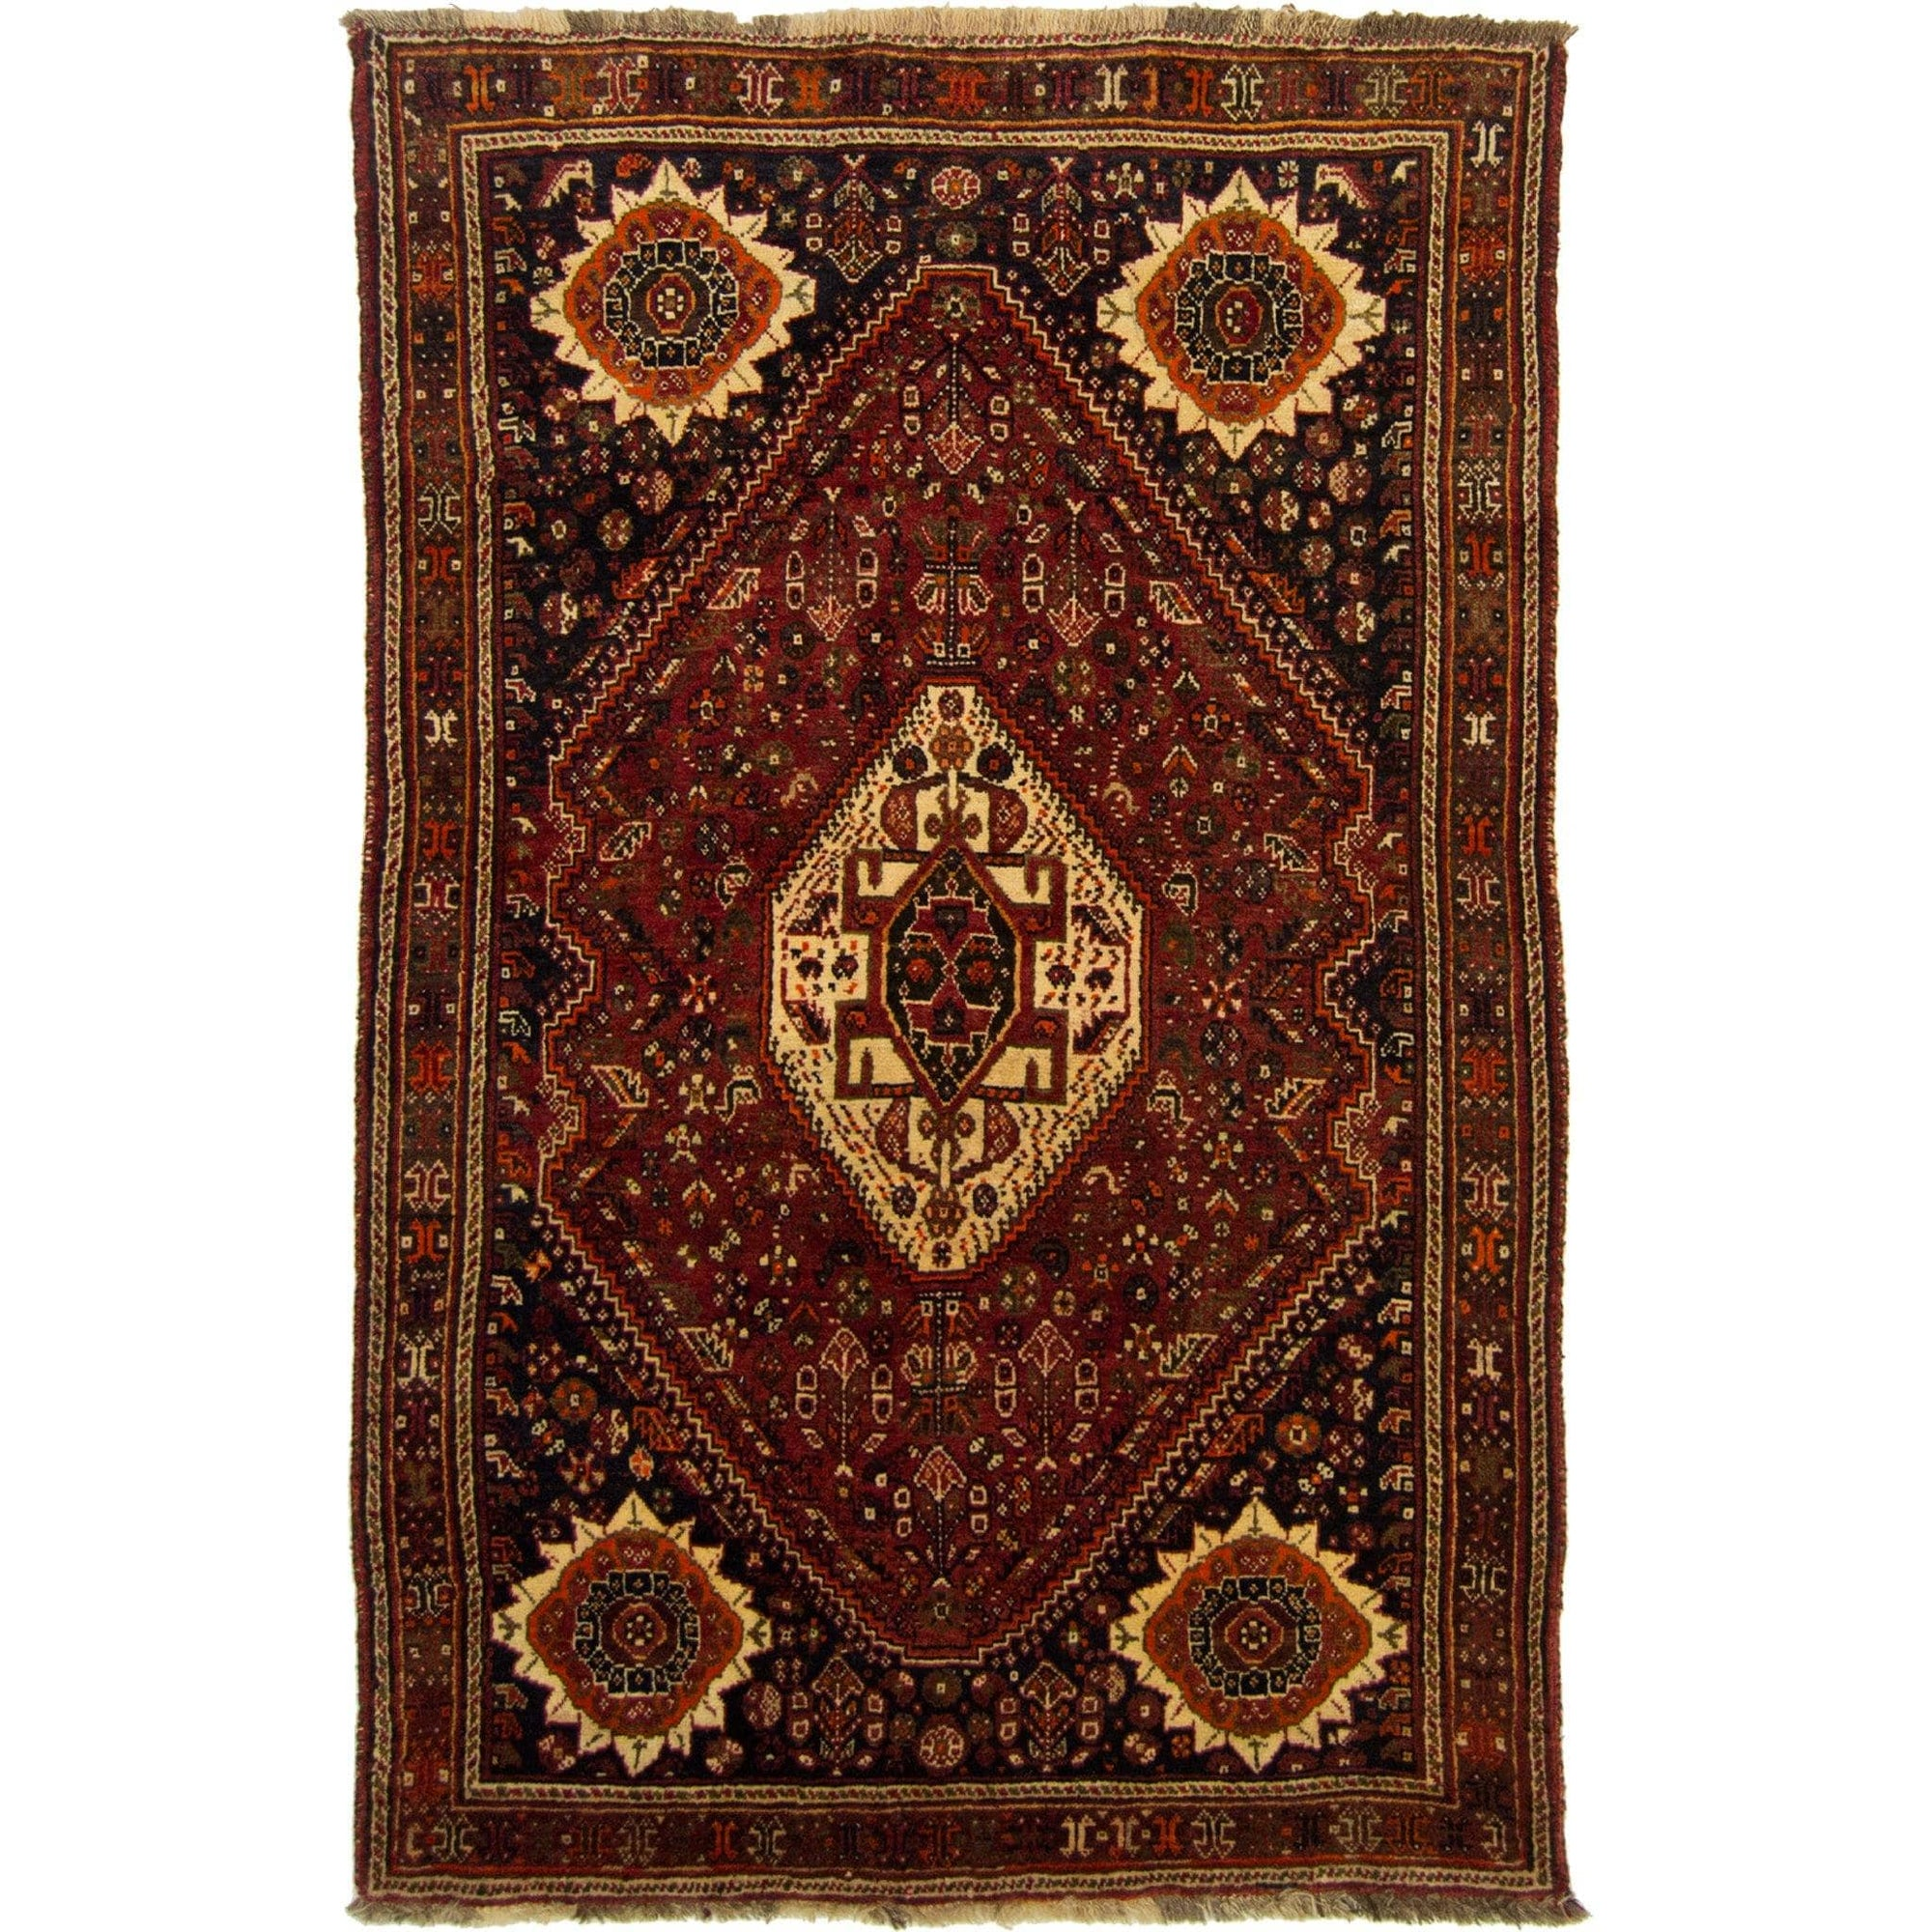 Fine Hand-knotted 100% Wool Persian Shiraz Rug 109cm x 173cm Persian-Rug | House-of-Haghi | NewMarket | Auckland | NZ | Handmade Persian Rugs | Hand Knotted Persian Rugs